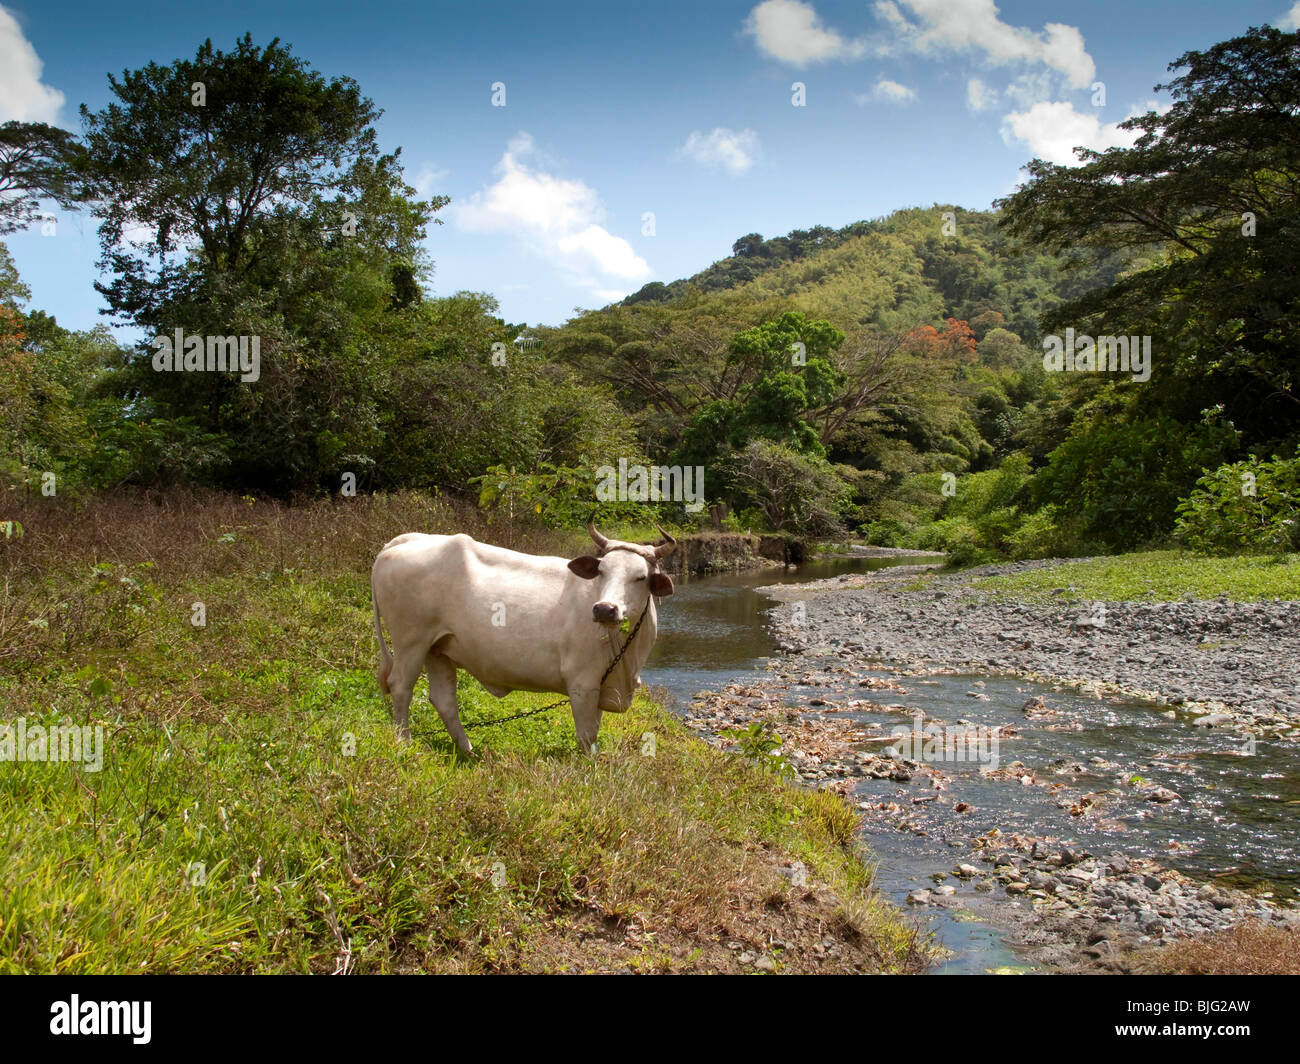 A brahman cow on pastureland close to a river near the tropical rainforest Tobago - Stock Image